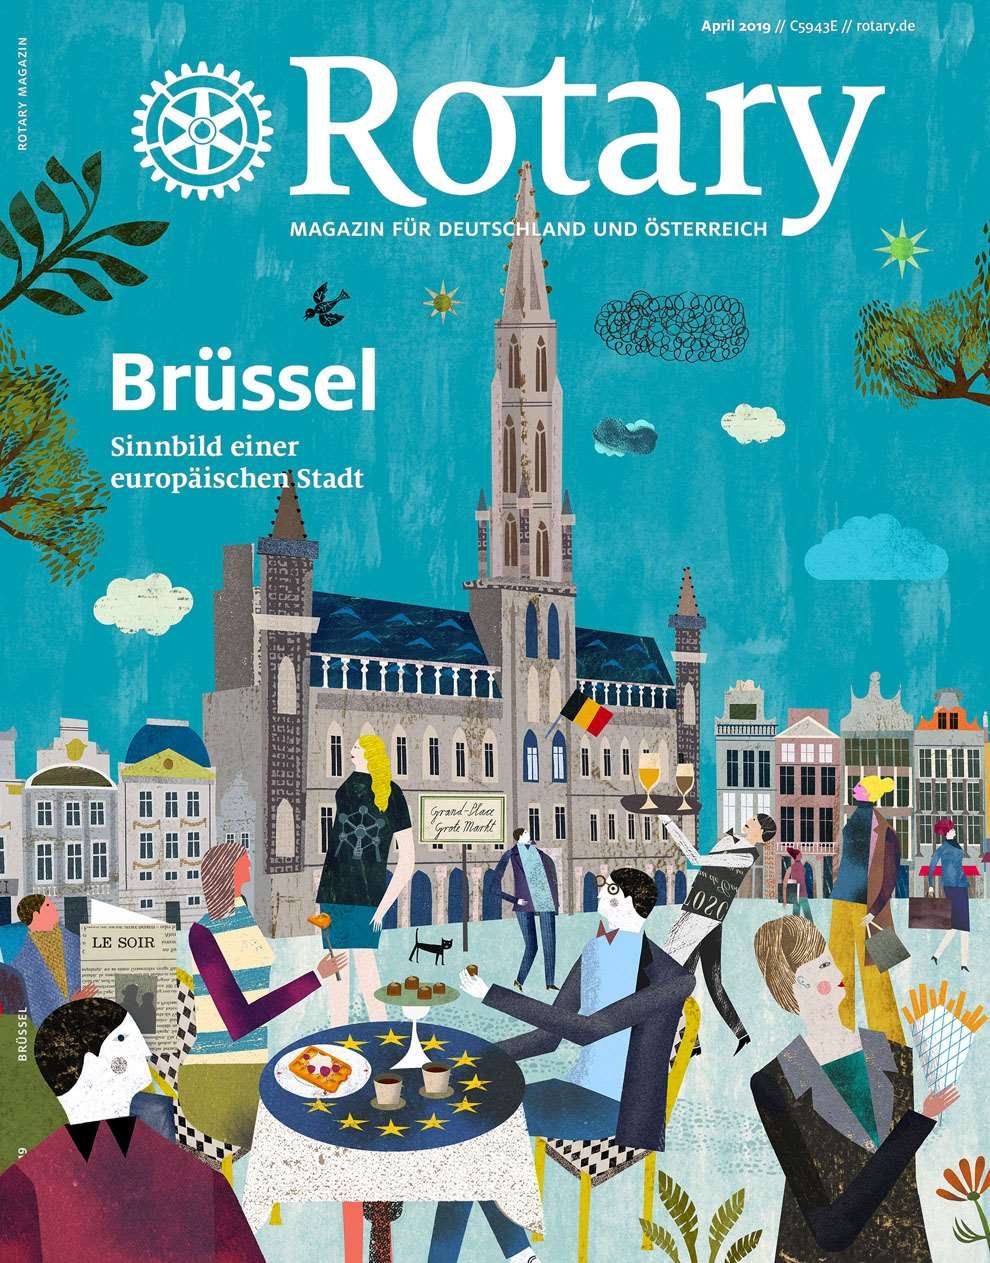 Martin Haake, Editorial cover for Rotary. Mix media layered illustration using collage of crowds dining and eating in Europe.